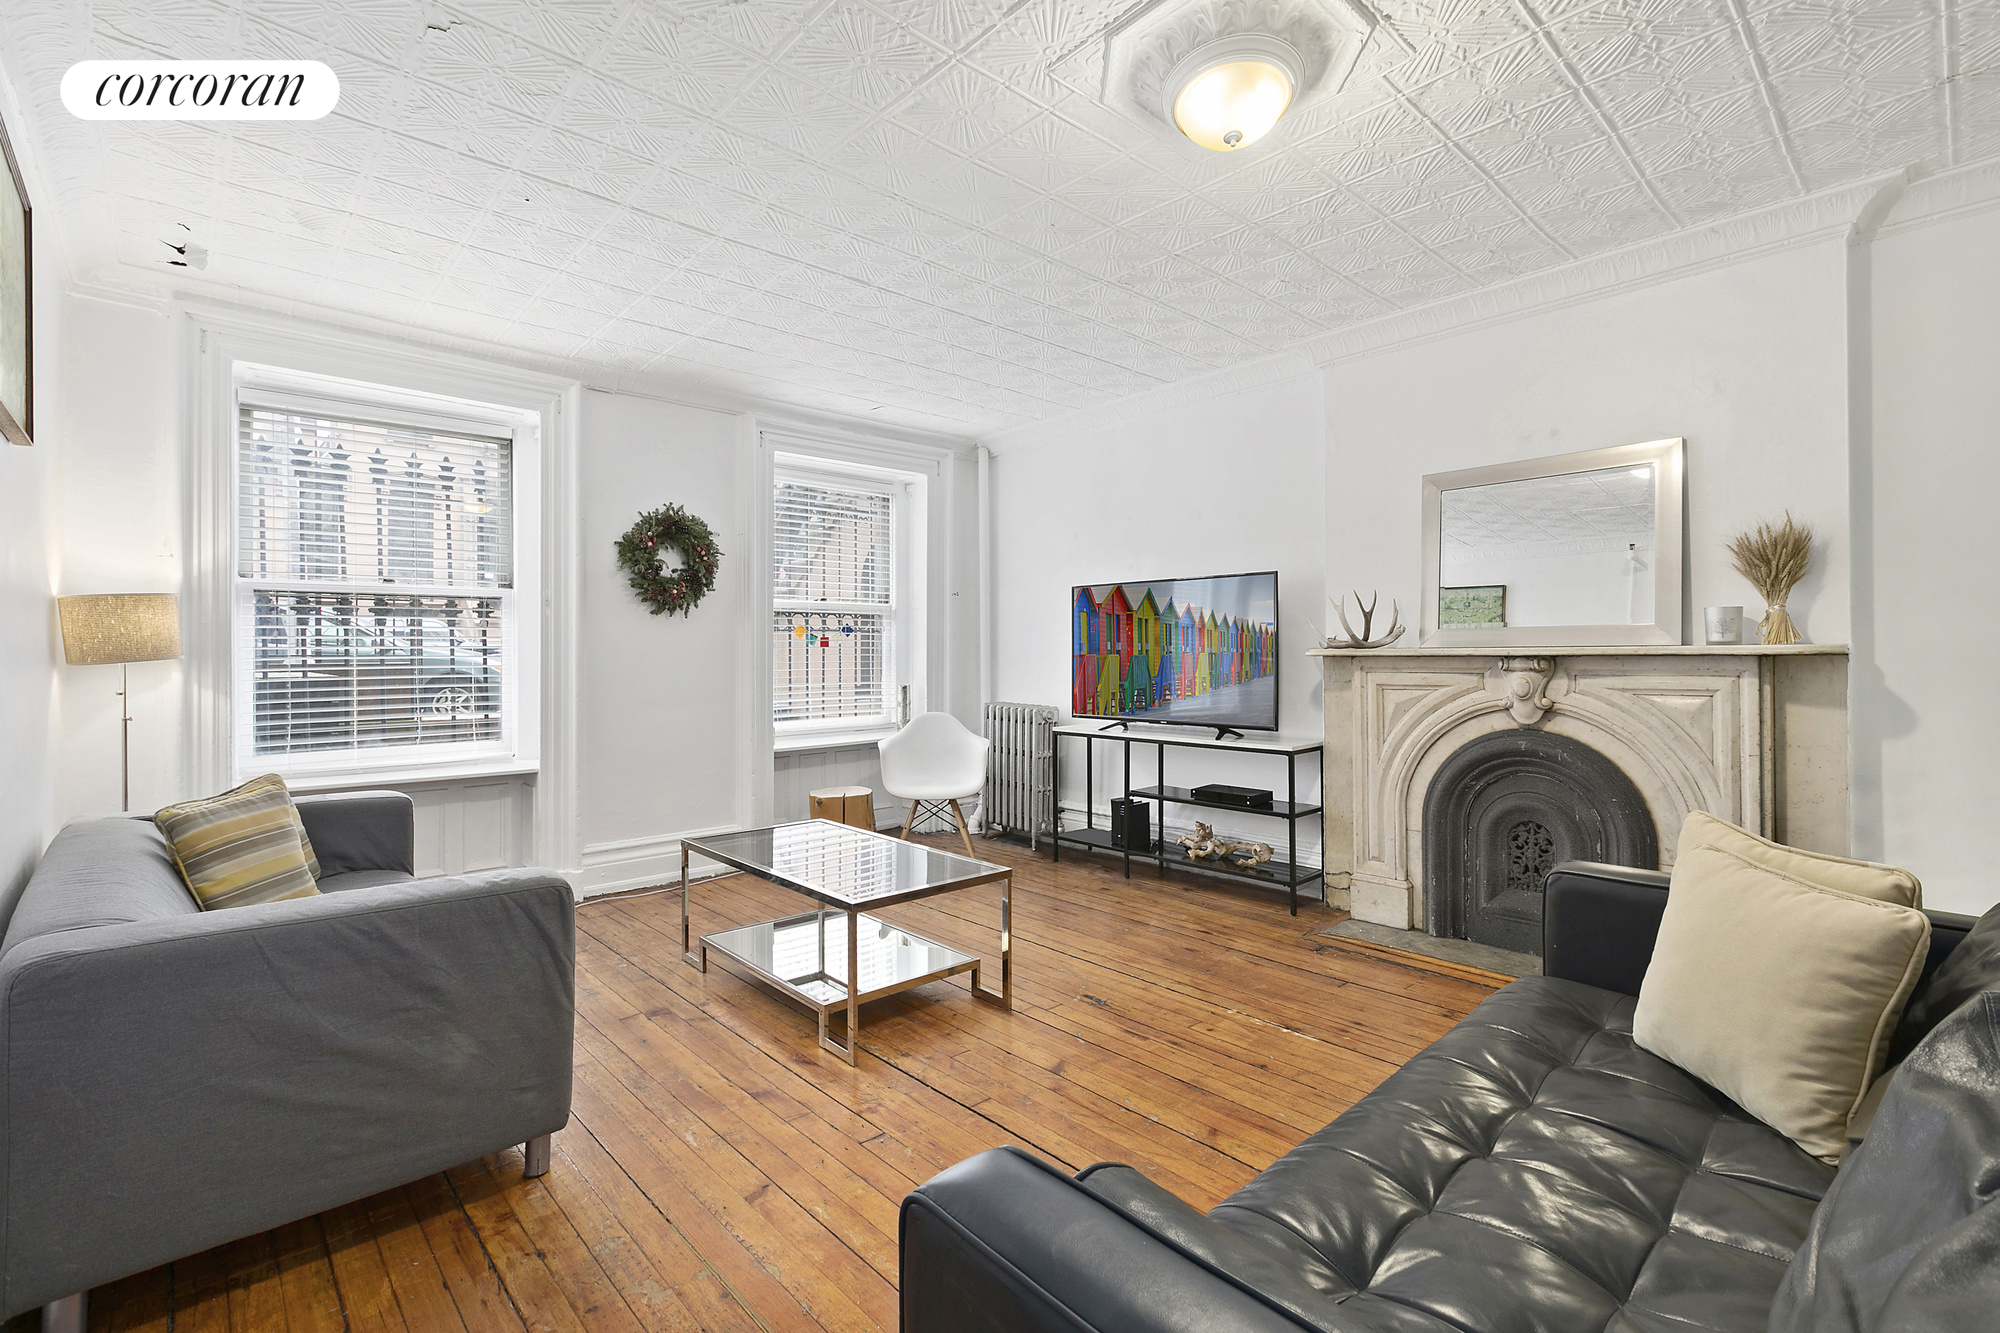 Remarkable Corcoran 7 South Oxford Street Apt 1 Fort Greene Rentals Best Image Libraries Barepthycampuscom